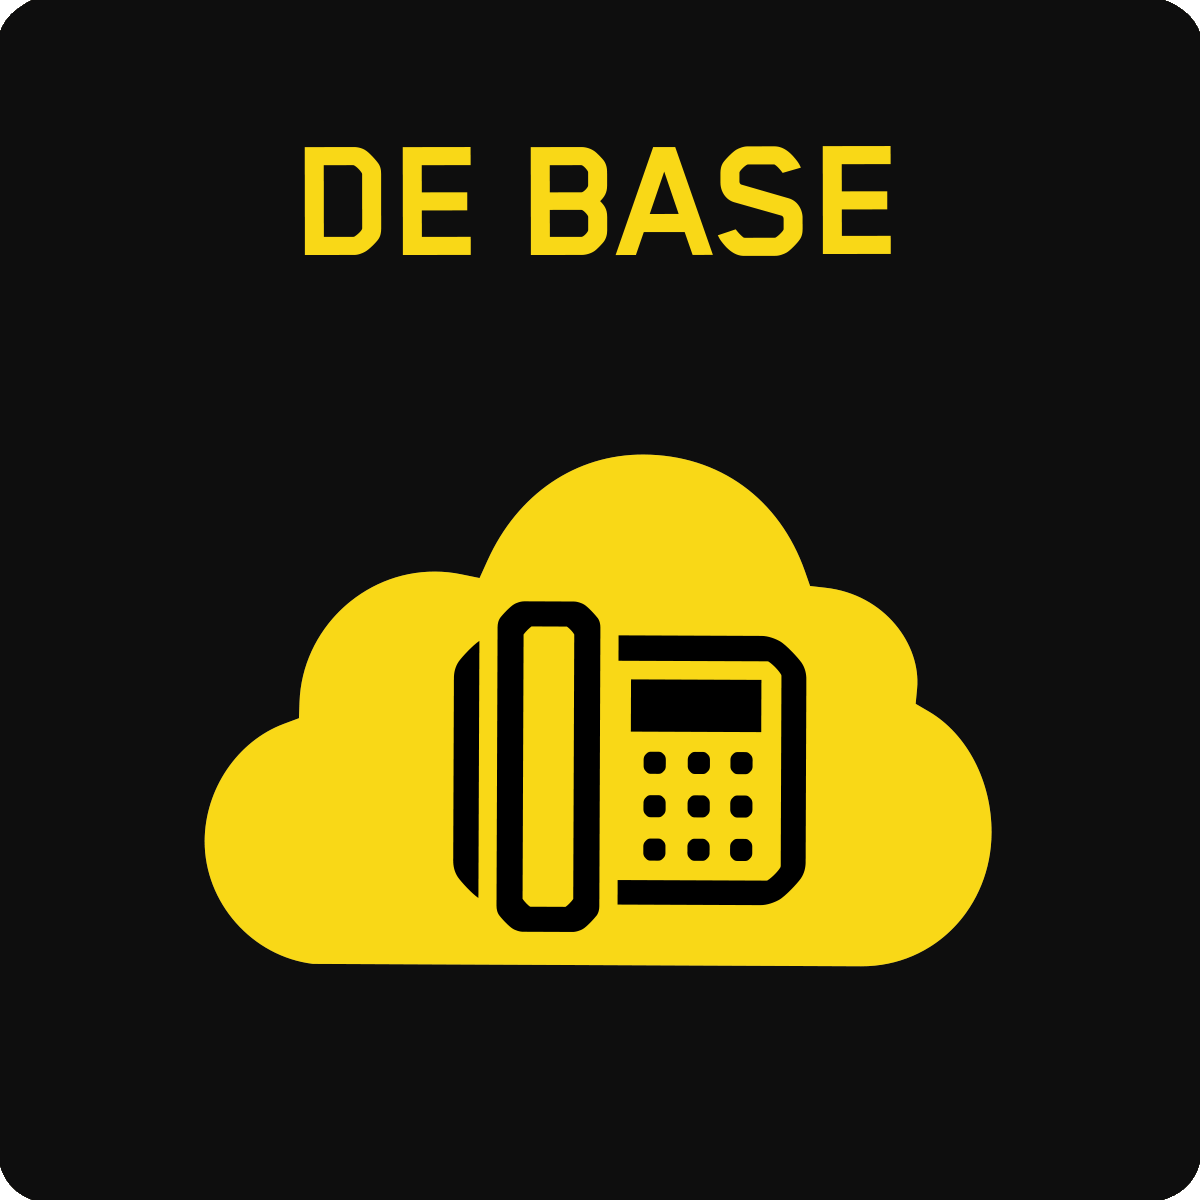 Communications en nuage de base